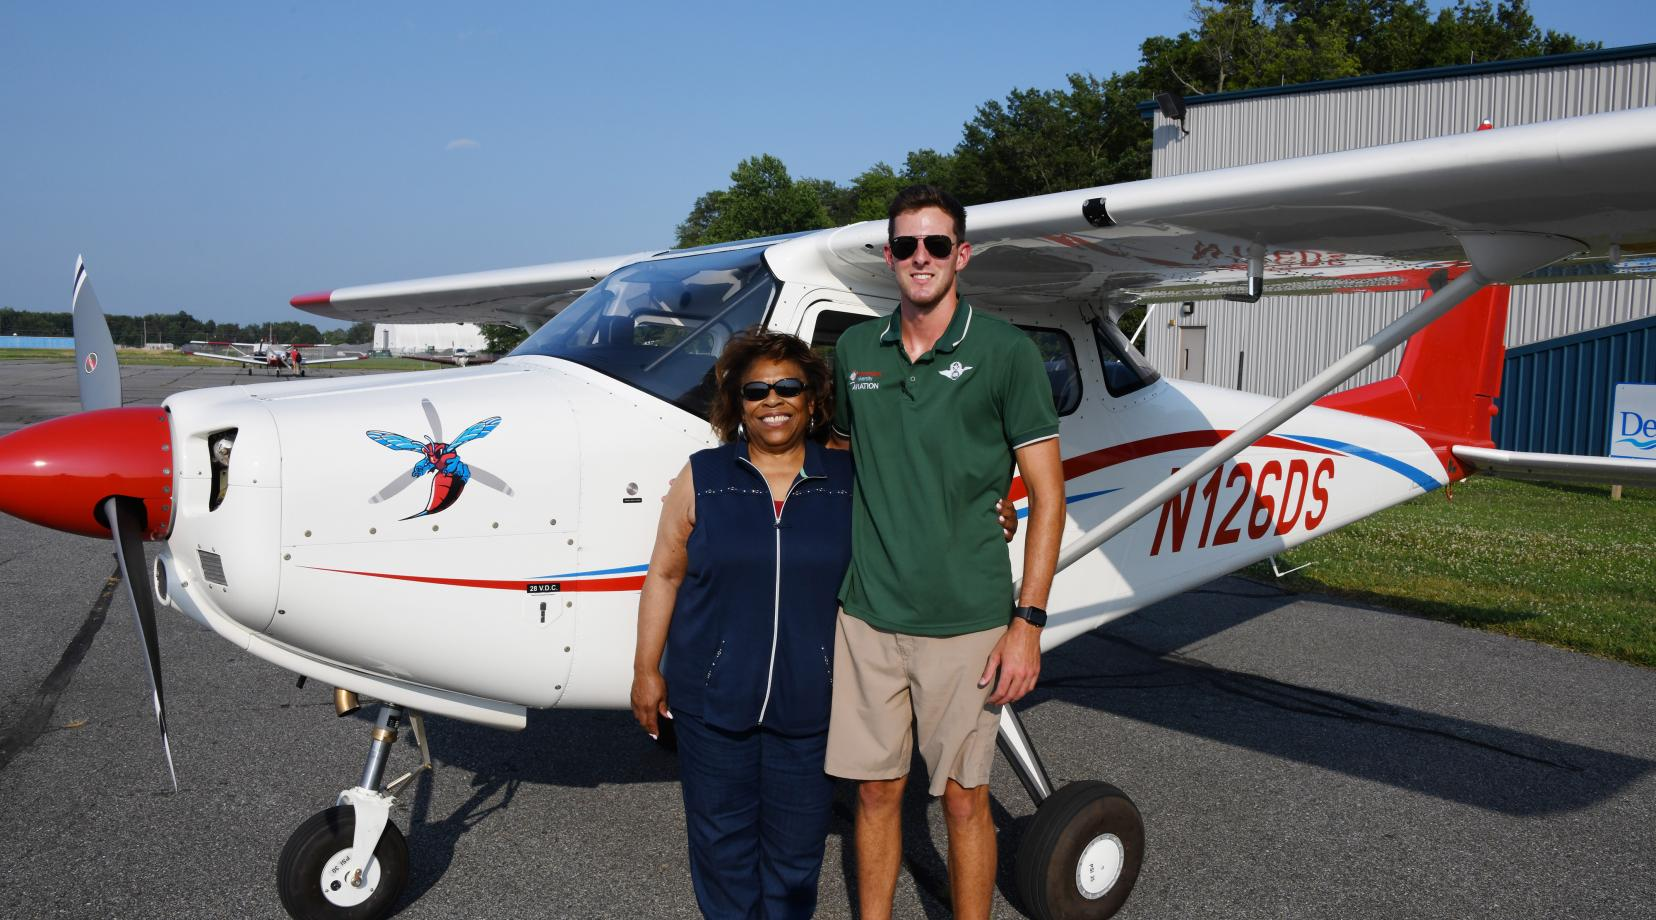 <p>DSU President Wilma Mishoe poses with Aviation Program graduate and current Instructor B. Lane DeLeon after flying into the Delaware Air Park on the first aircraft of a new fleet planes for the University.</p>